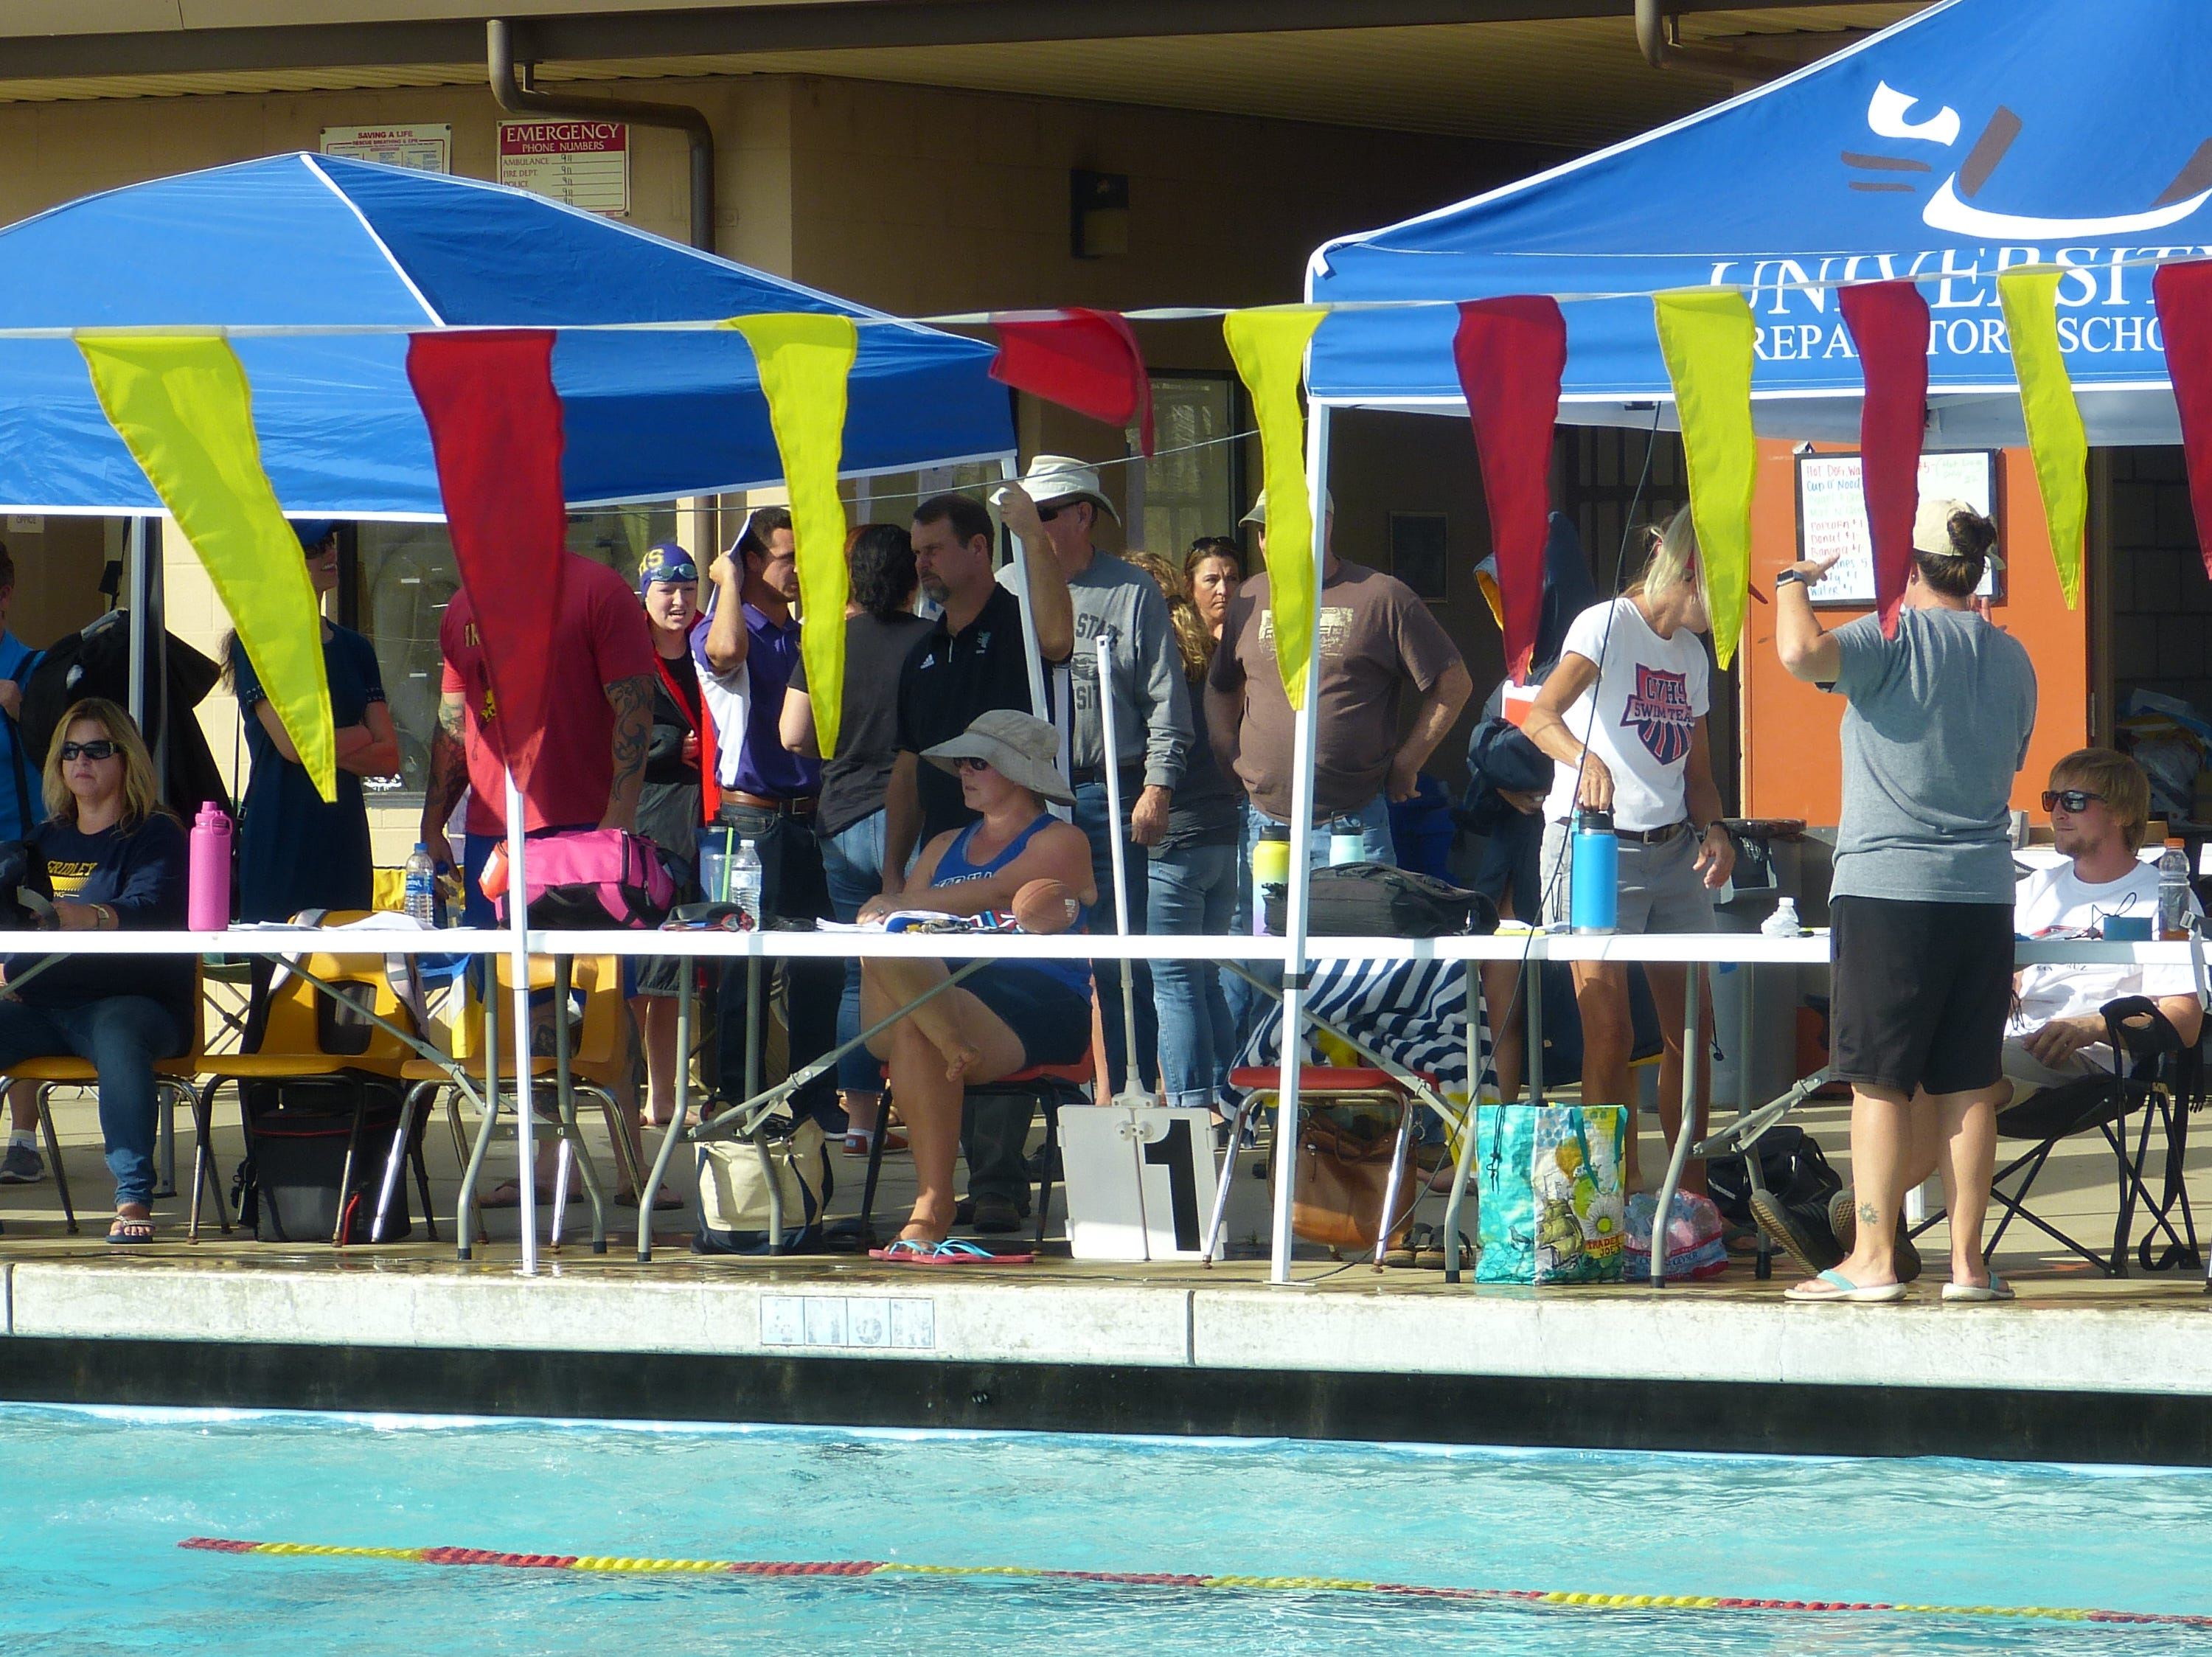 Coaches watch their swimmers compete Wednesday at the NSCIF trials for Division 2 schools at West Valley High School on Oct. 24, 2018.